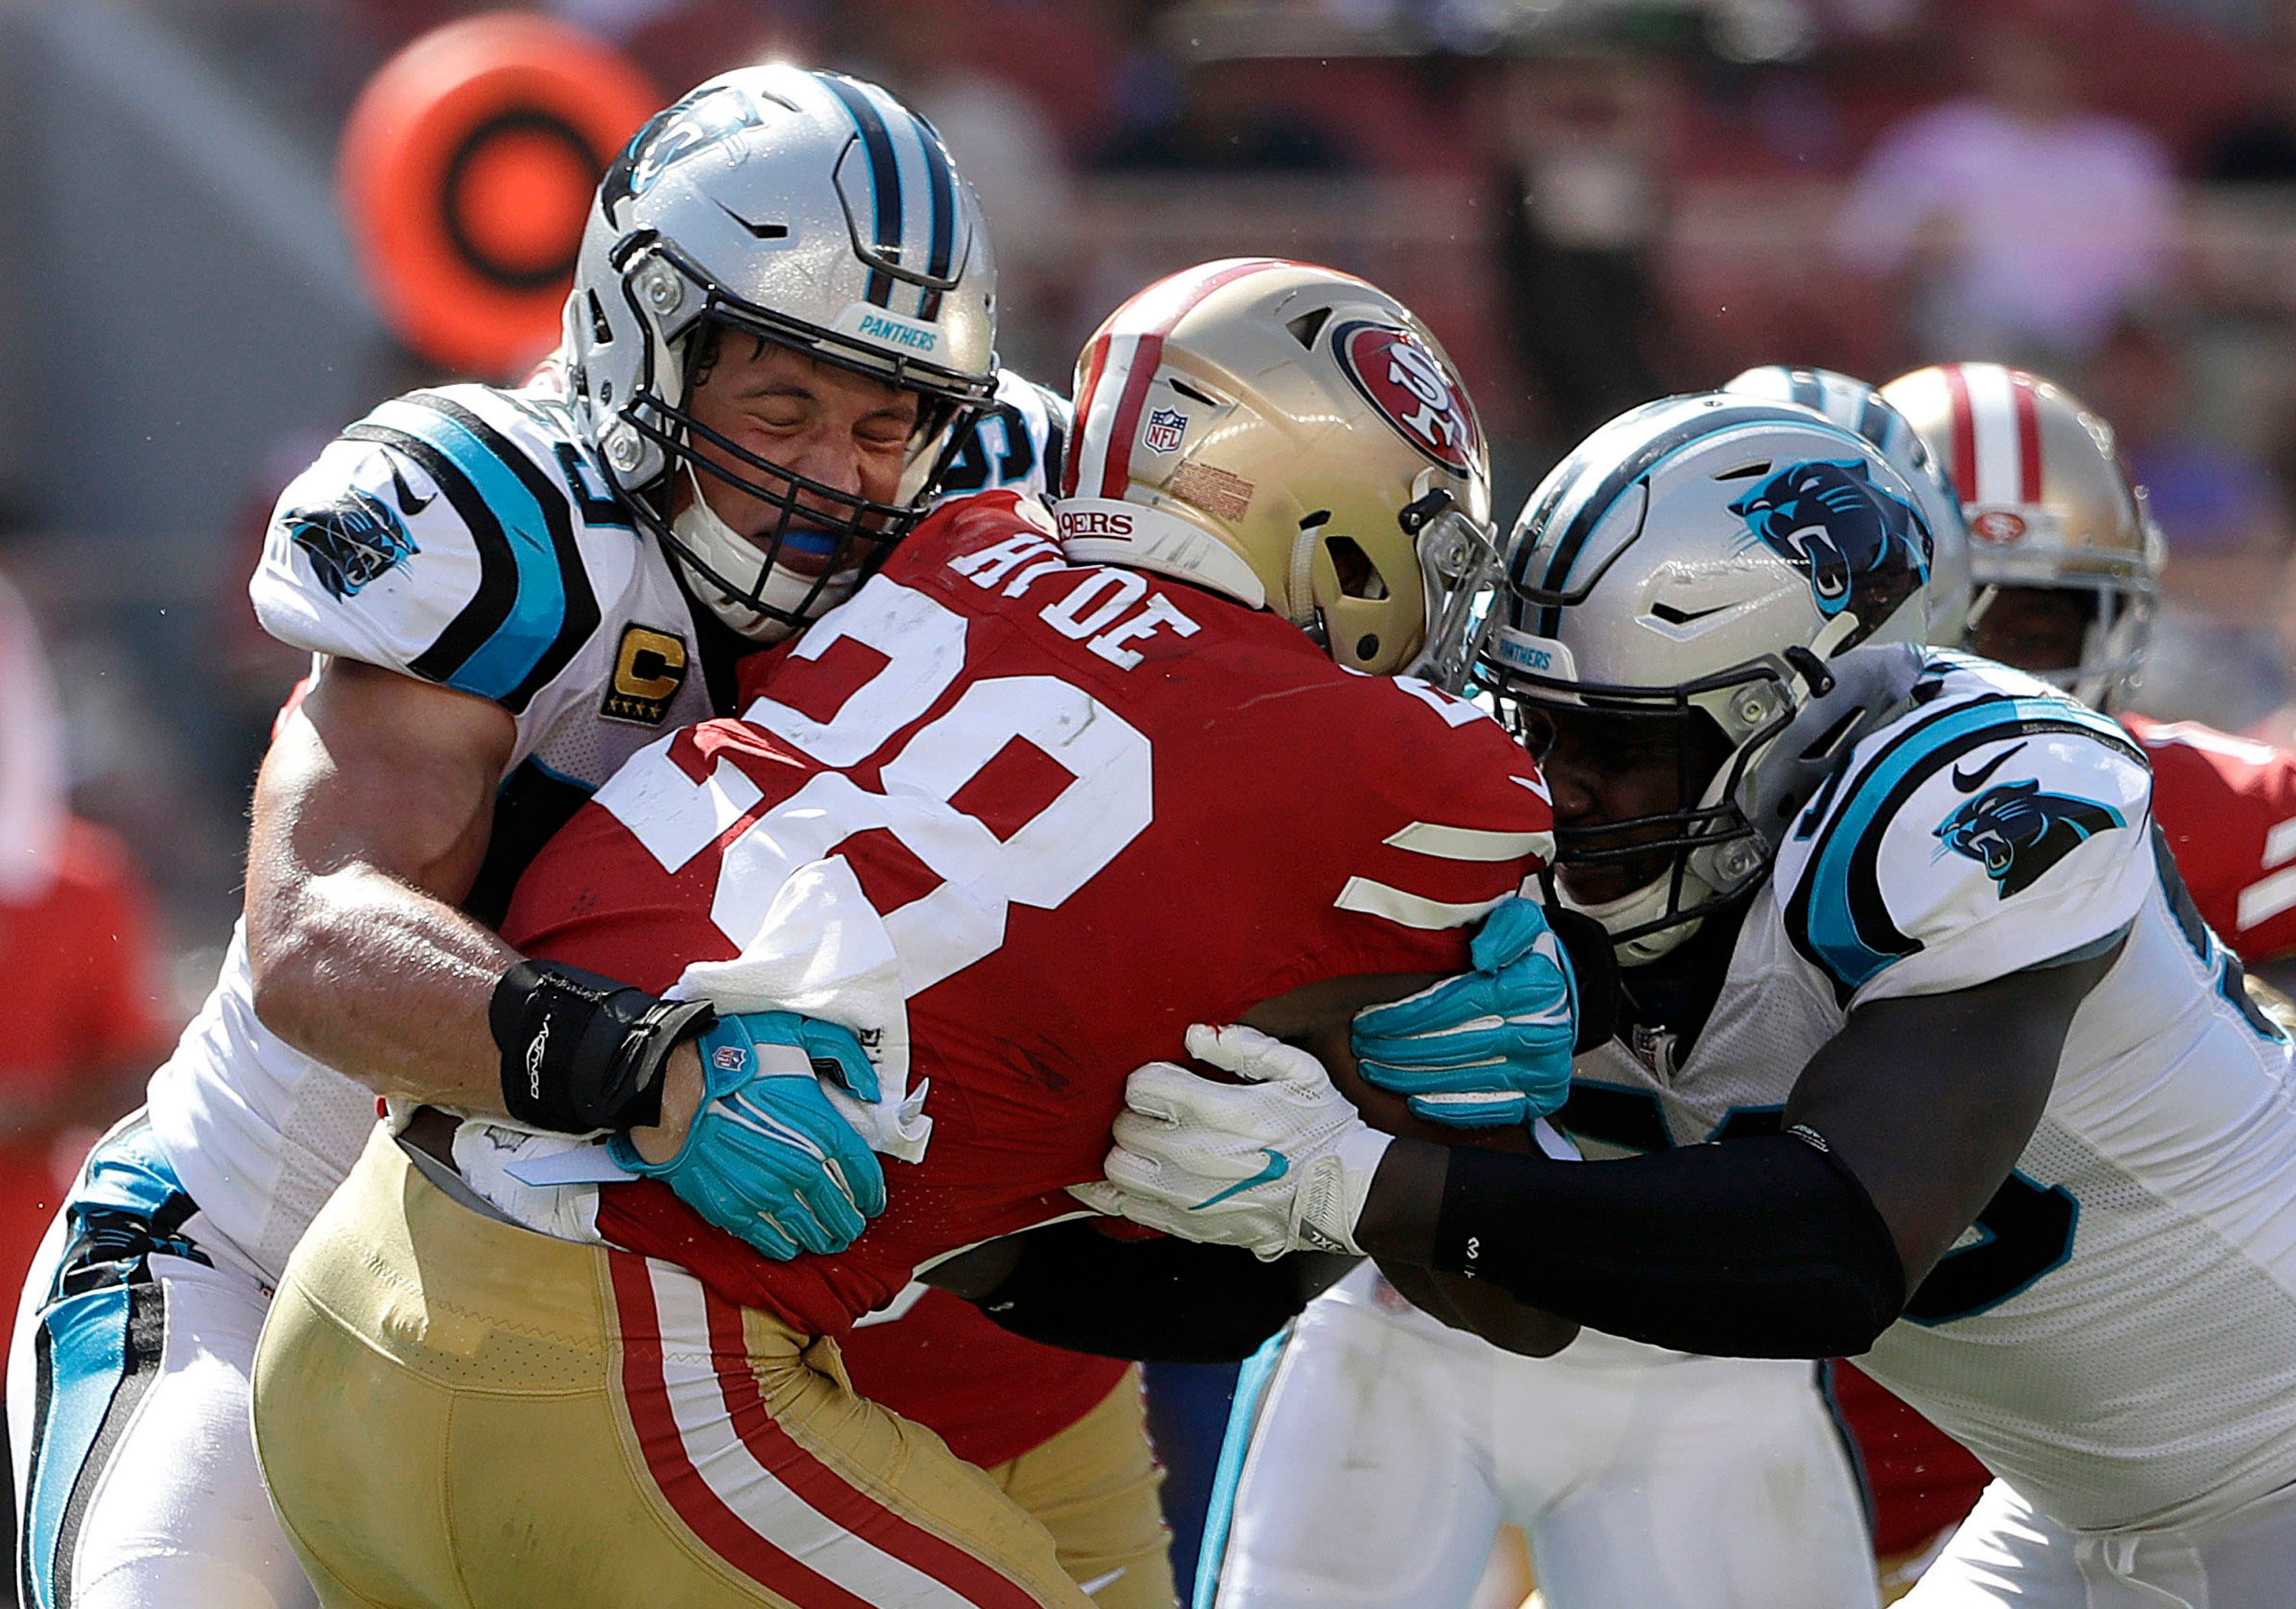 Shanahan's debut turns into dud as 49ers lose 23-3